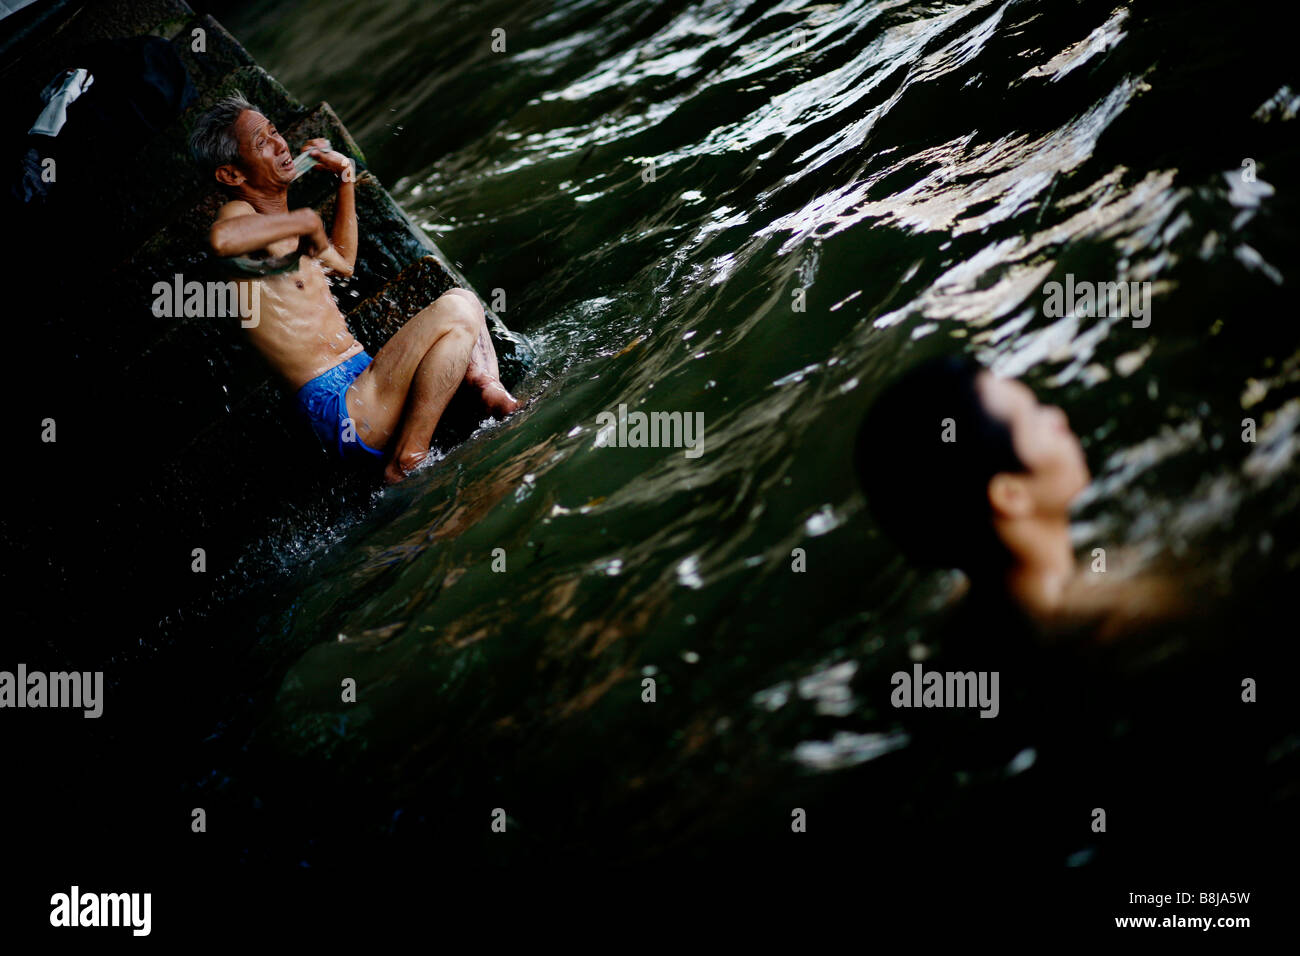 A man scrubs himself after swimming in the Pearl River in Guangzhou, China. - Stock Image